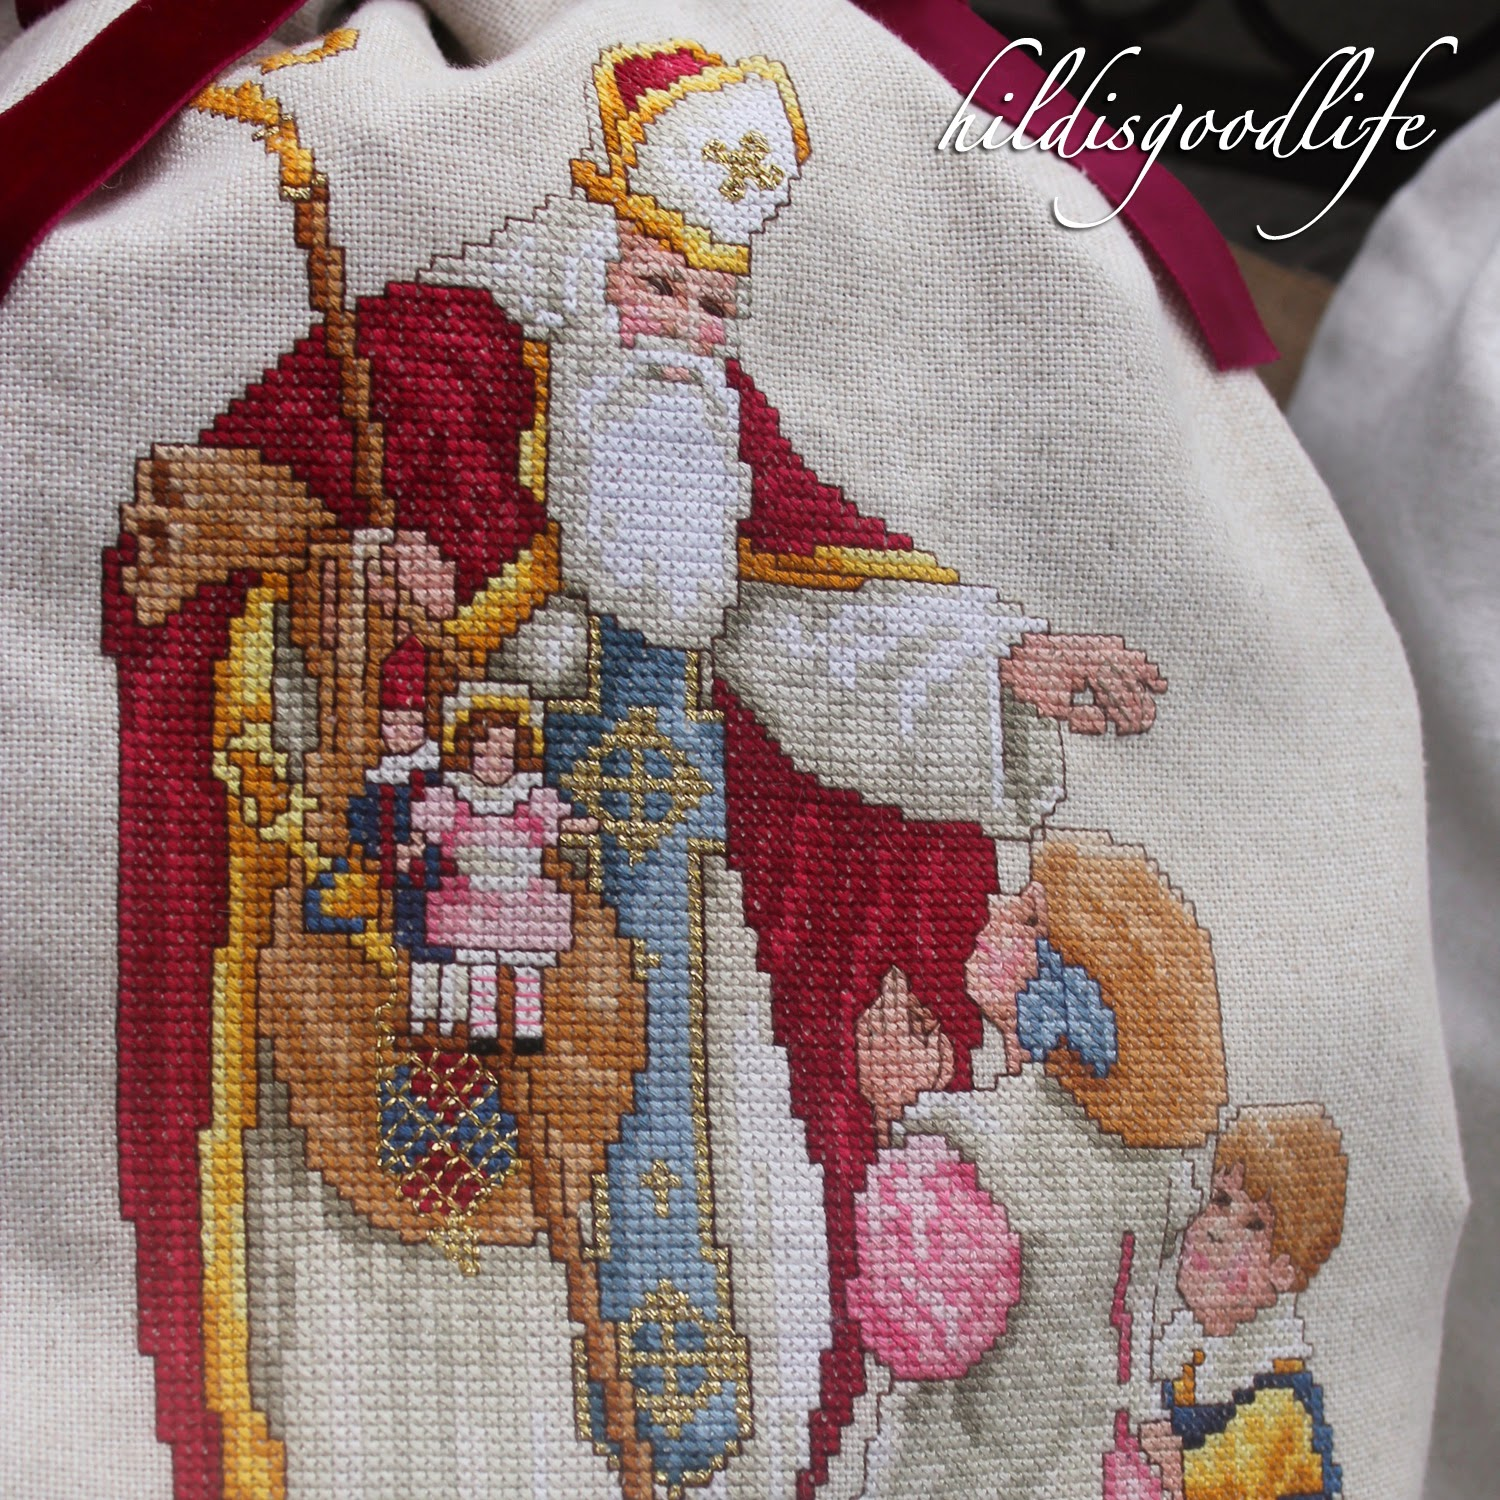 the life of st nicholas The legend of santa claus can be traced back hundreds of years to a monk named st nicholas thousands of children visited a philadelphia shop to see a life-size.